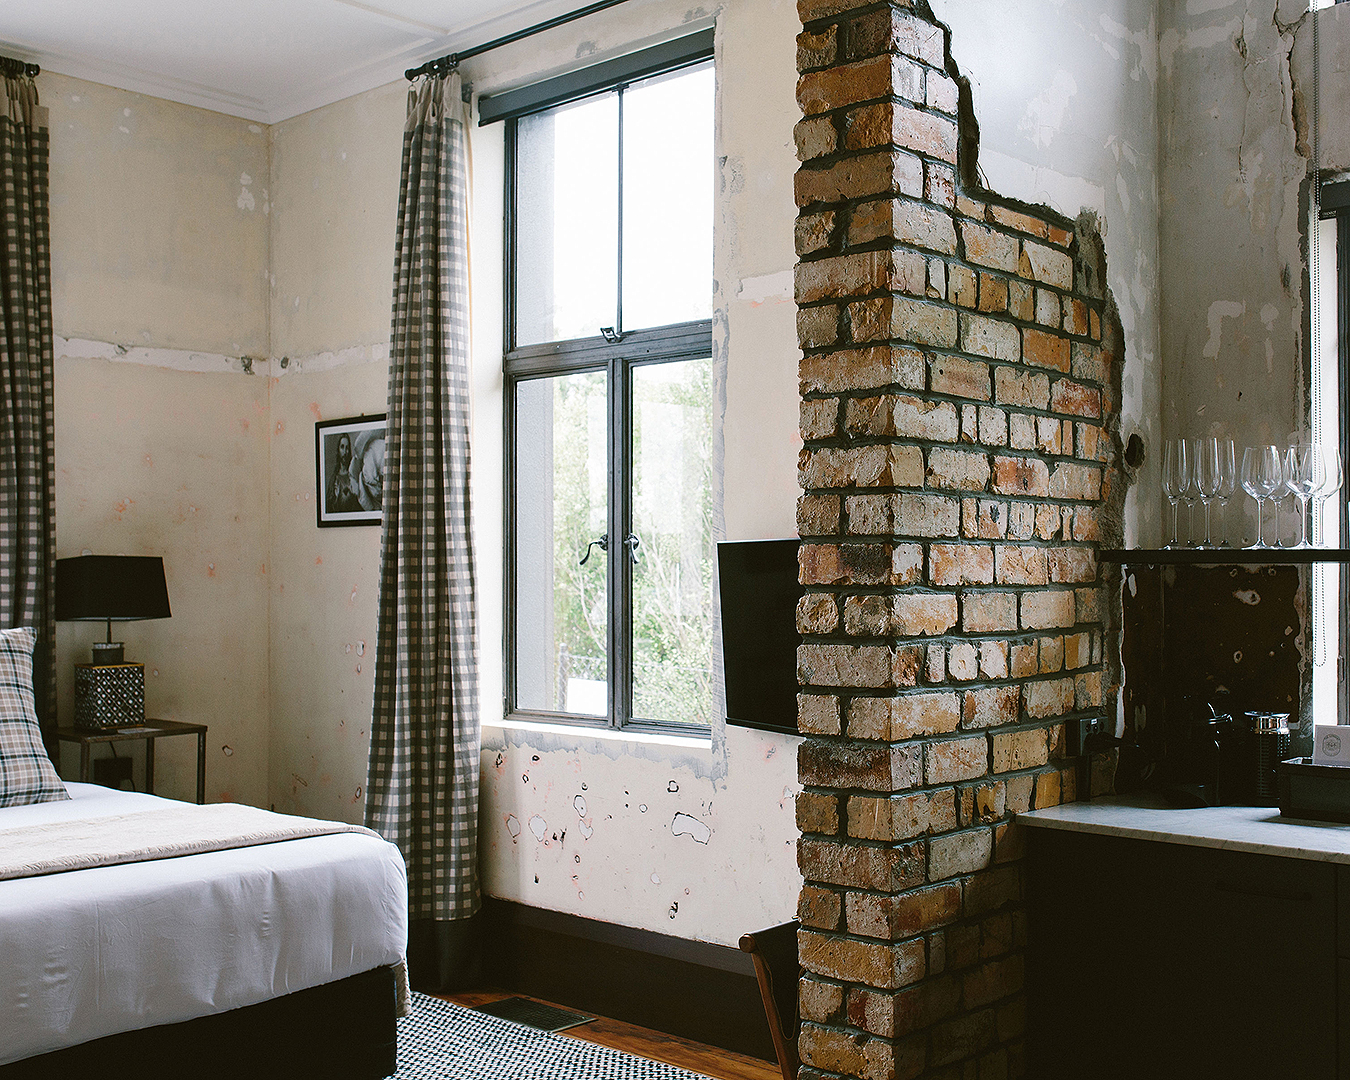 An exposed brick wall in a room at the Convent Hotel.